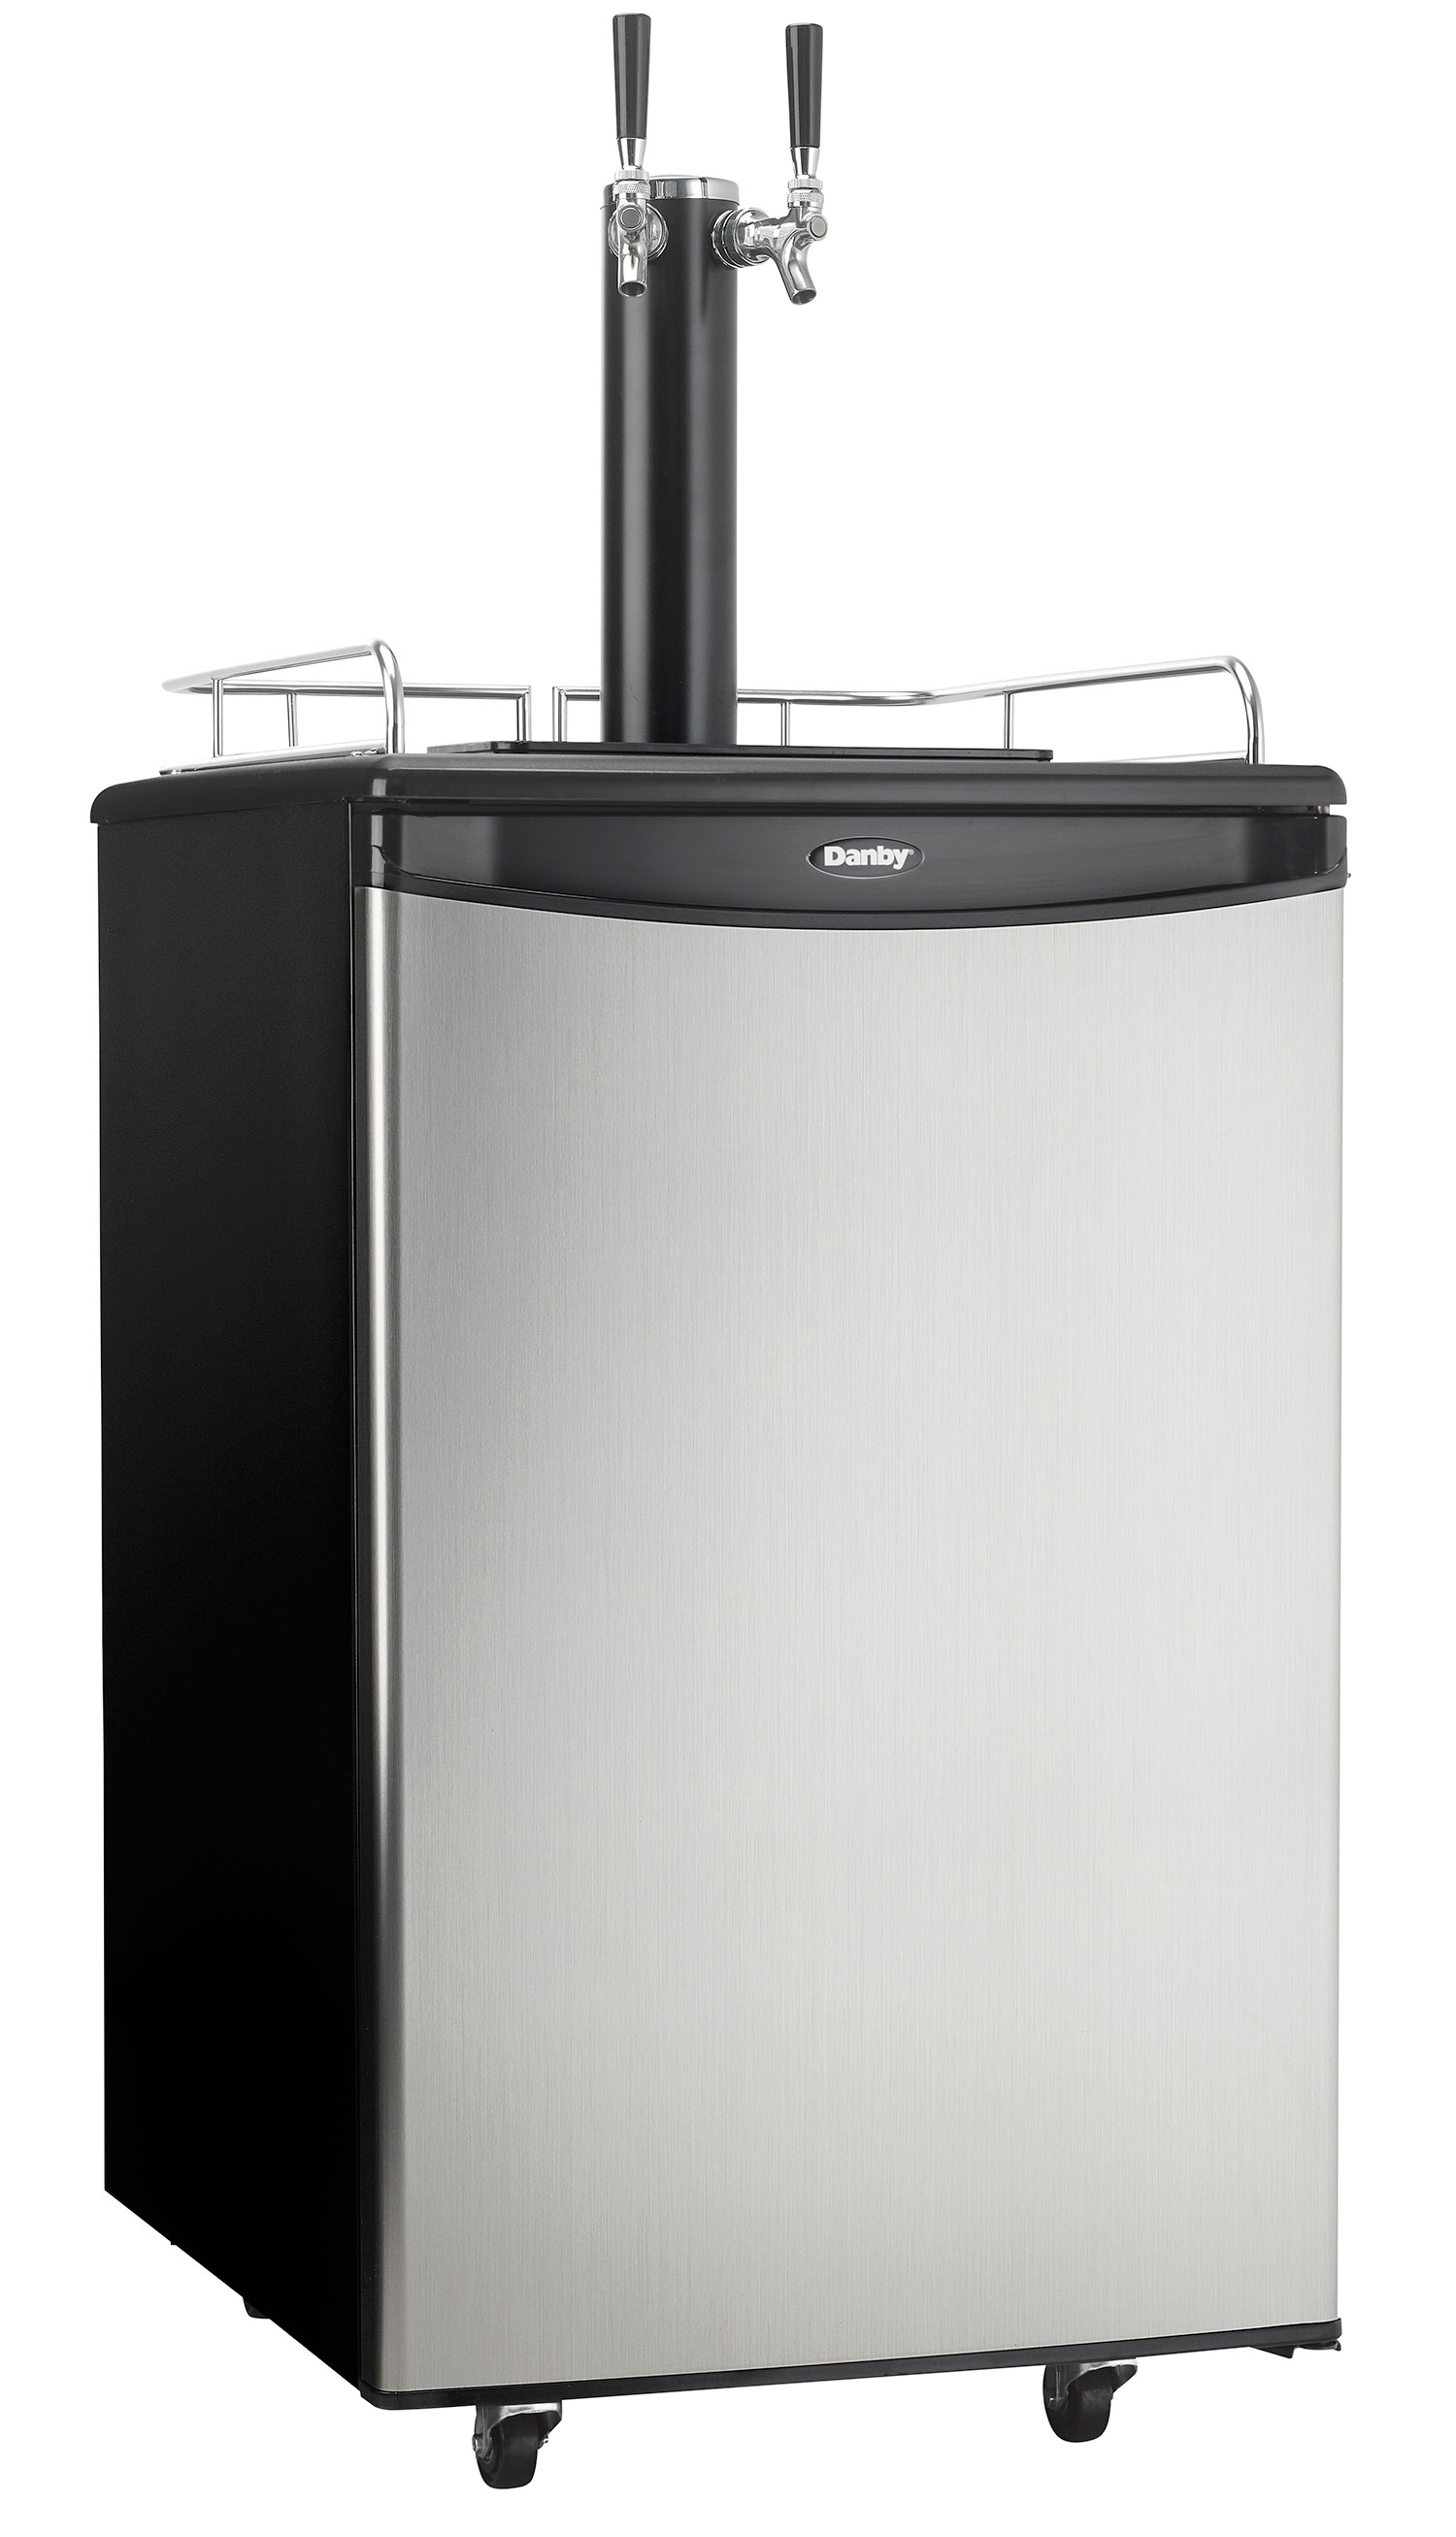 Danby® 5.4 Cu. Ft. Keg Cooler-Black with Stainless-DKC054A1BSL2DB ...